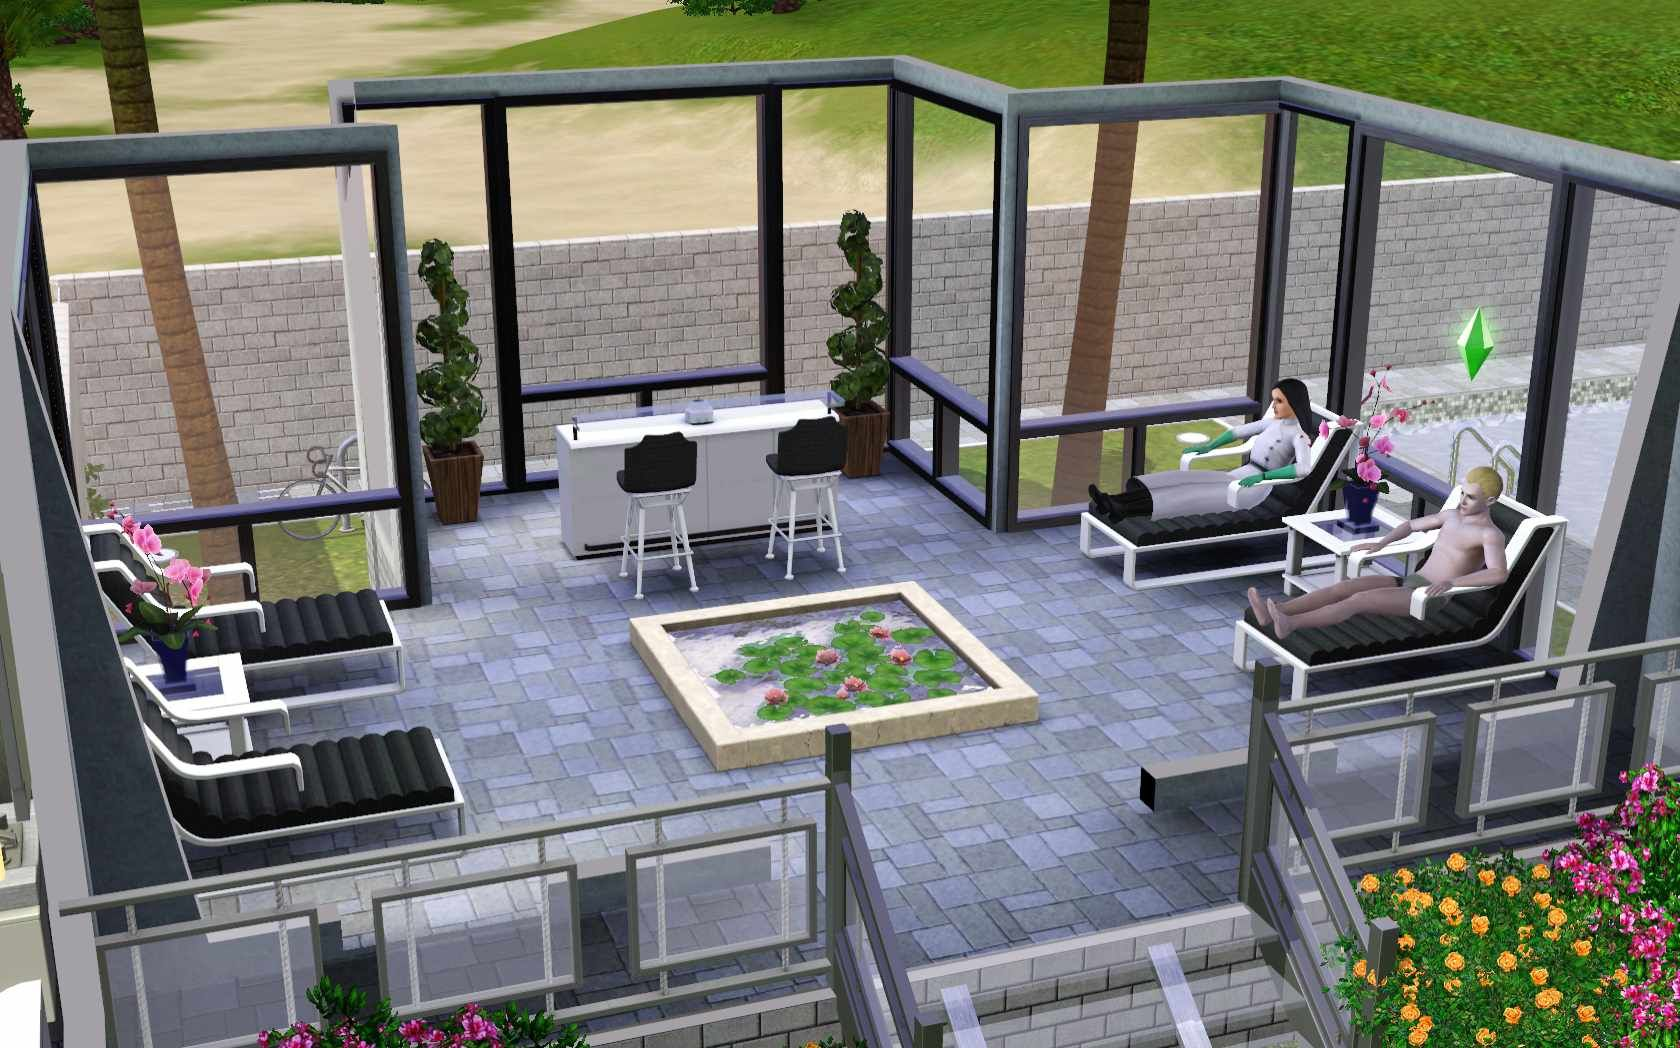 The Sims 3 Home Building And Design. The Powder Room